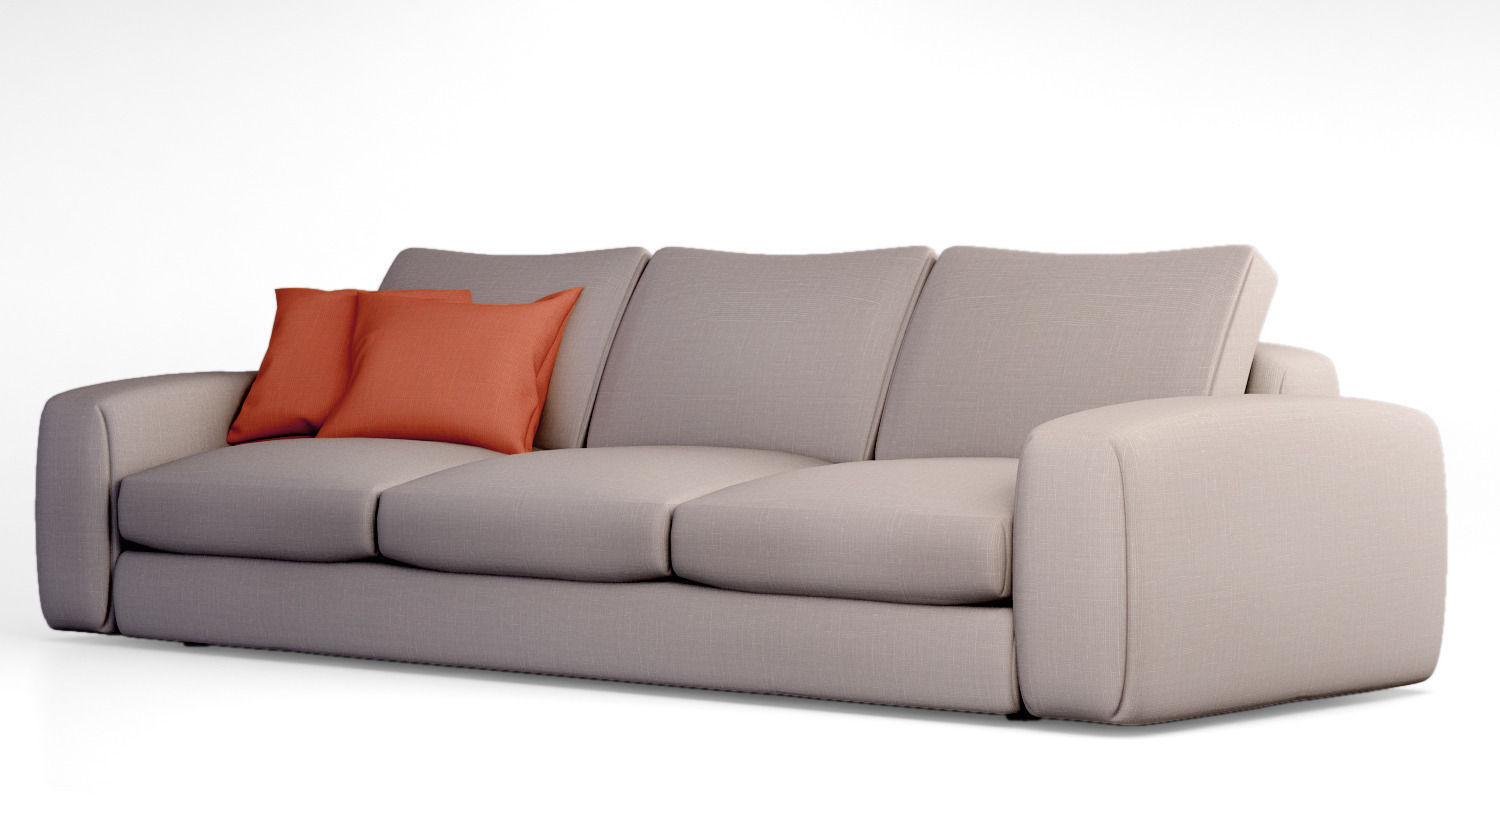 Jardan hudson sofa 3d model max obj for Sofa hudson